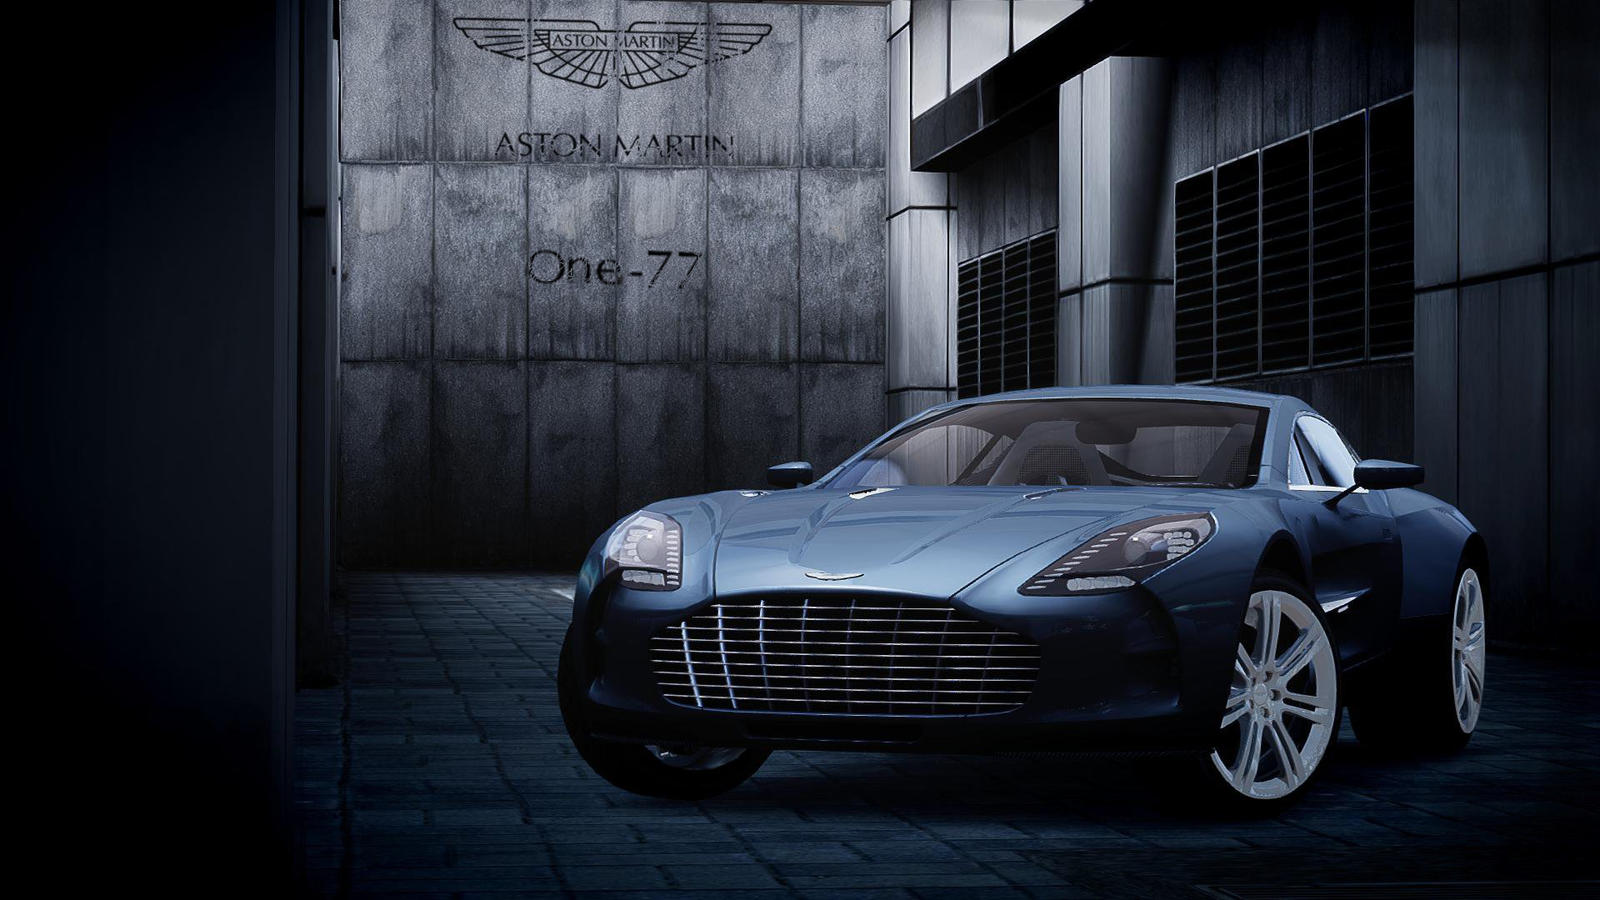 aston martin one 77 hd wallpapers | wallpaper background hd